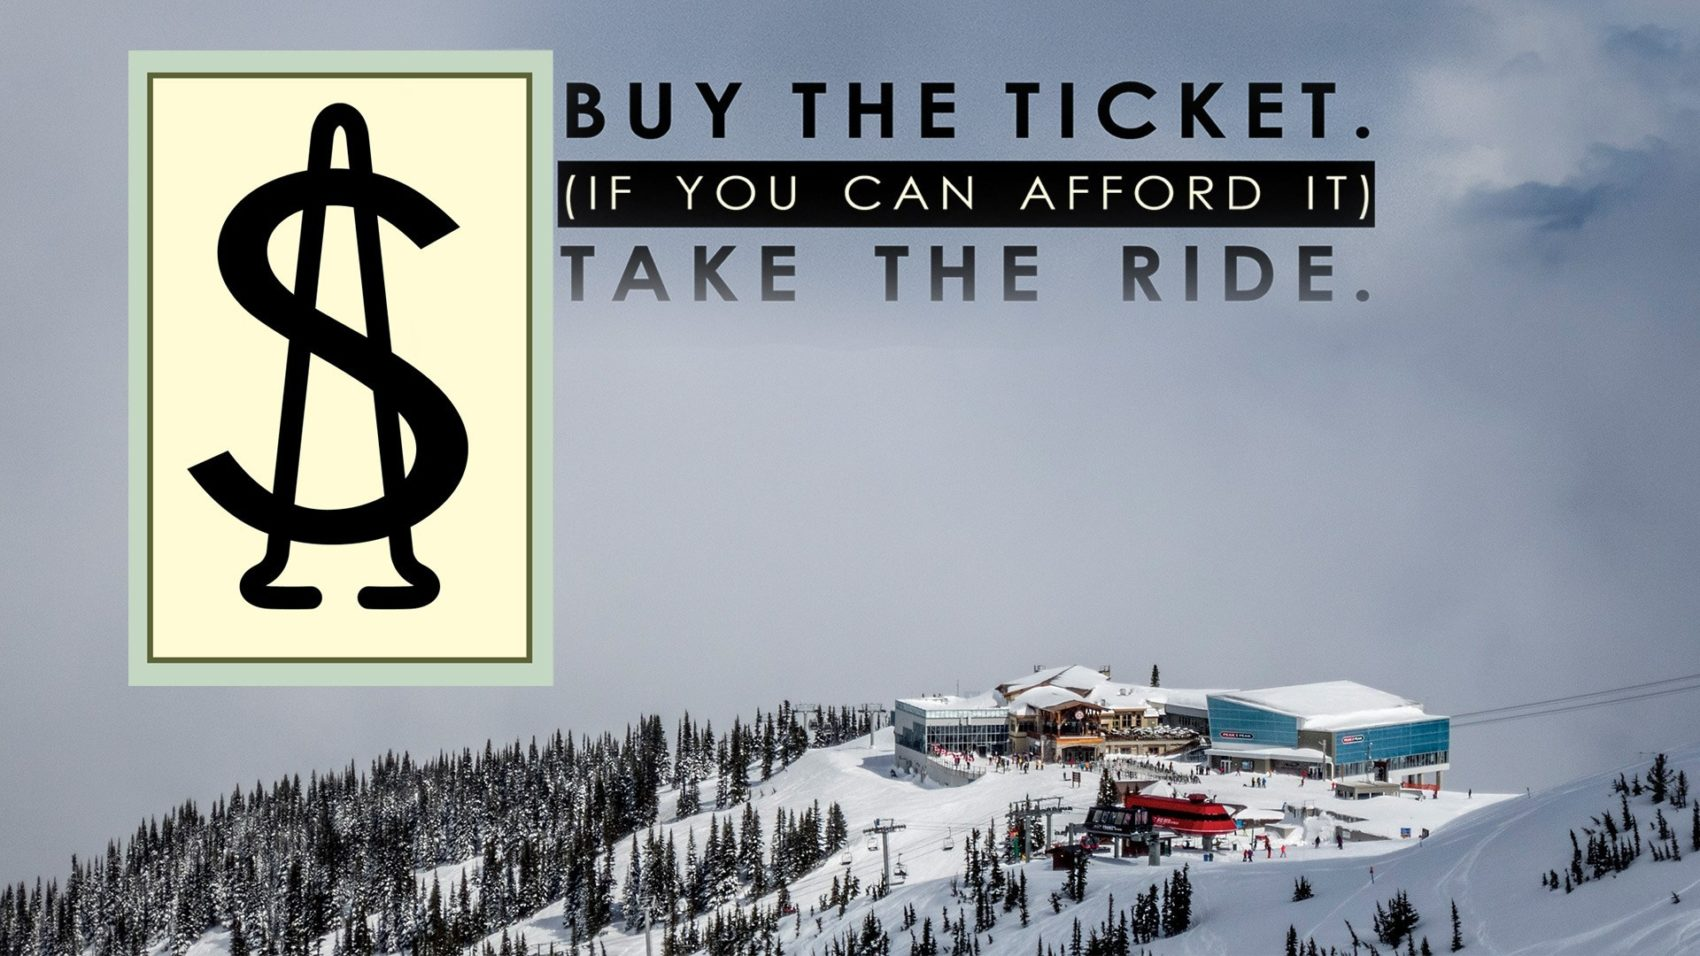 Lift tickets are getting more expensive